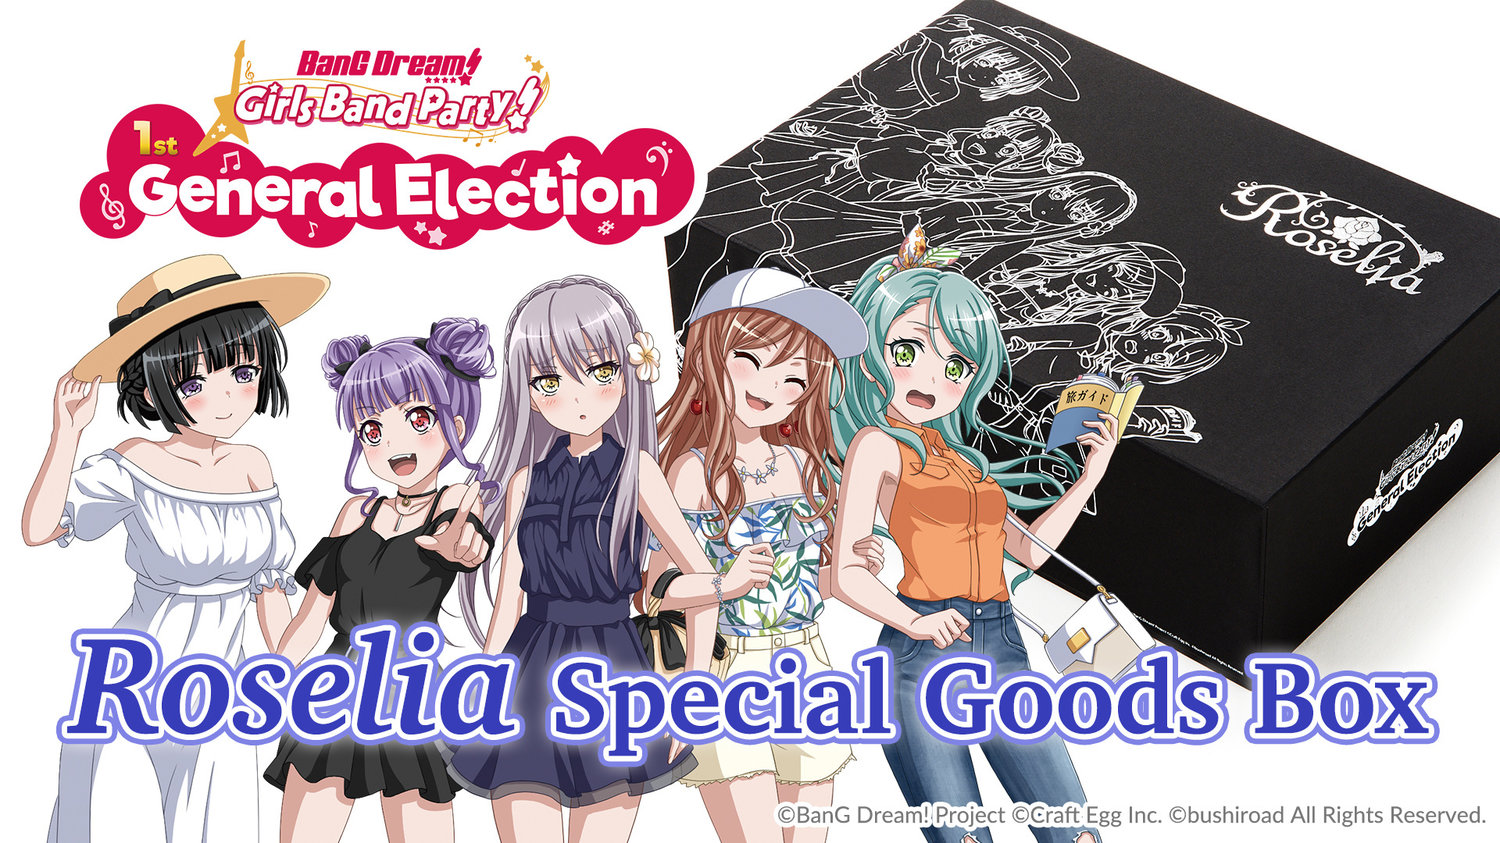 Roselia Special Goods Box to Celebrate Roselia winning the English Version of BanG Dream! Girls Band Party! 1st General Election!